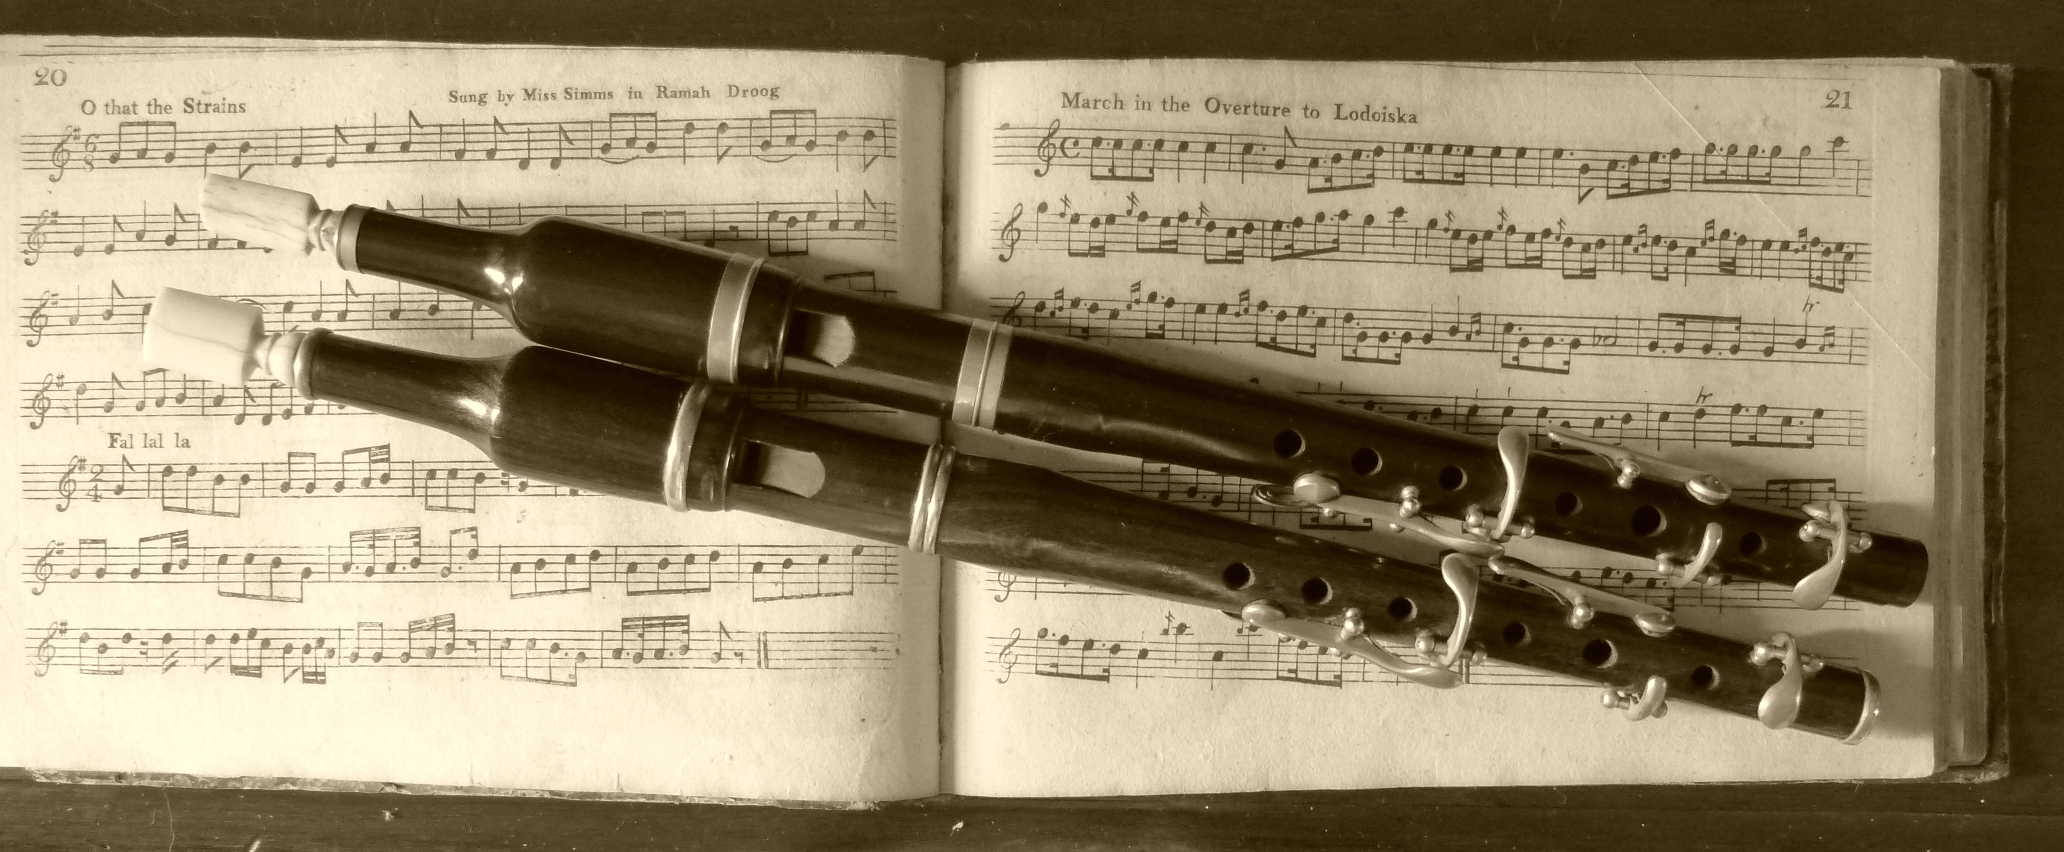 A sepia photograph of two standard English flageolets resting on some sheet music.